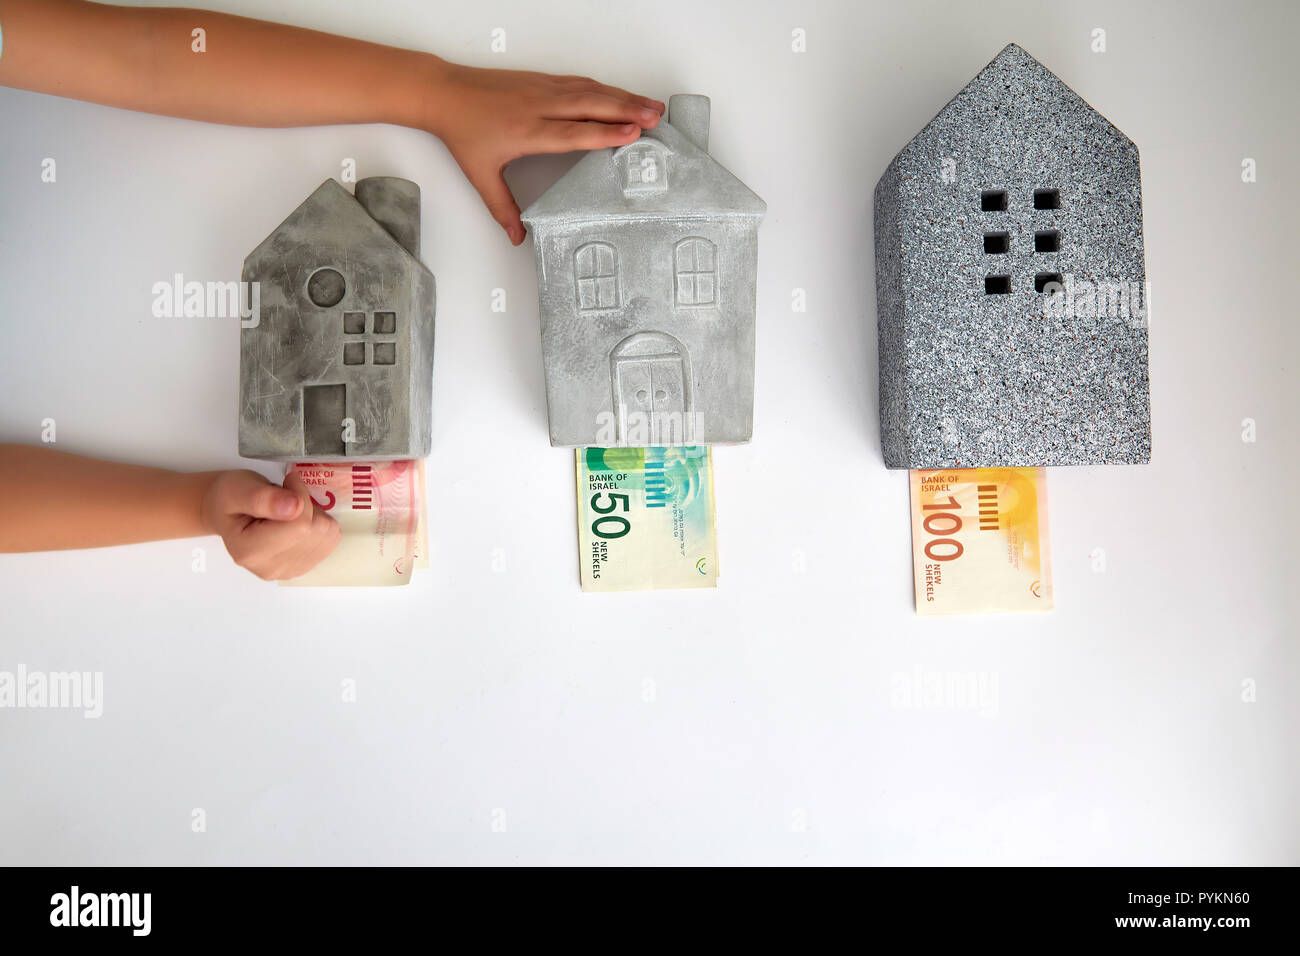 Different houses and price in Israeli currency Stock Photo